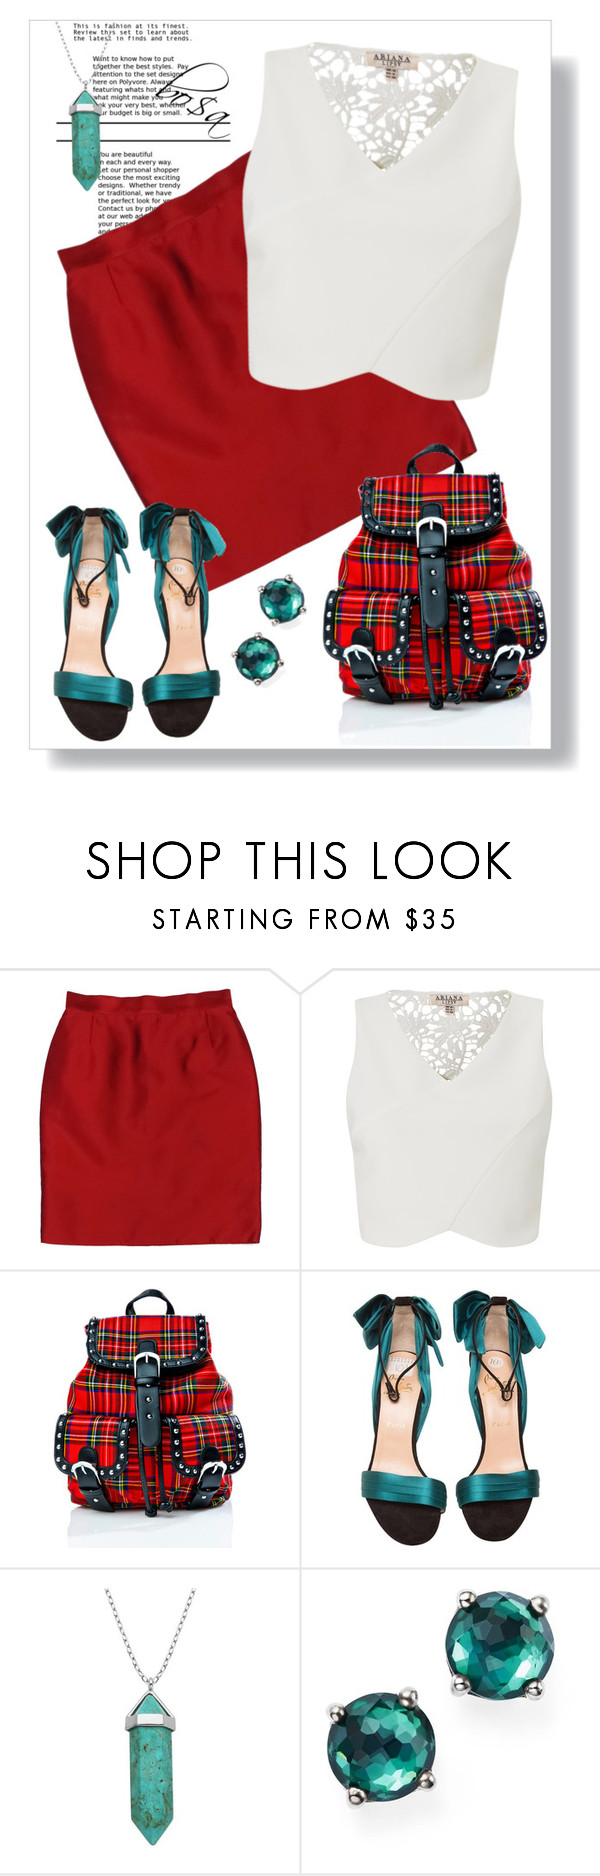 """Untitled #89"" by hibaelhafar ❤ liked on Polyvore featuring Dolce&Gabbana, Lipsy, Current Mood, Christian Louboutin, Lord & Taylor and Ippolita"